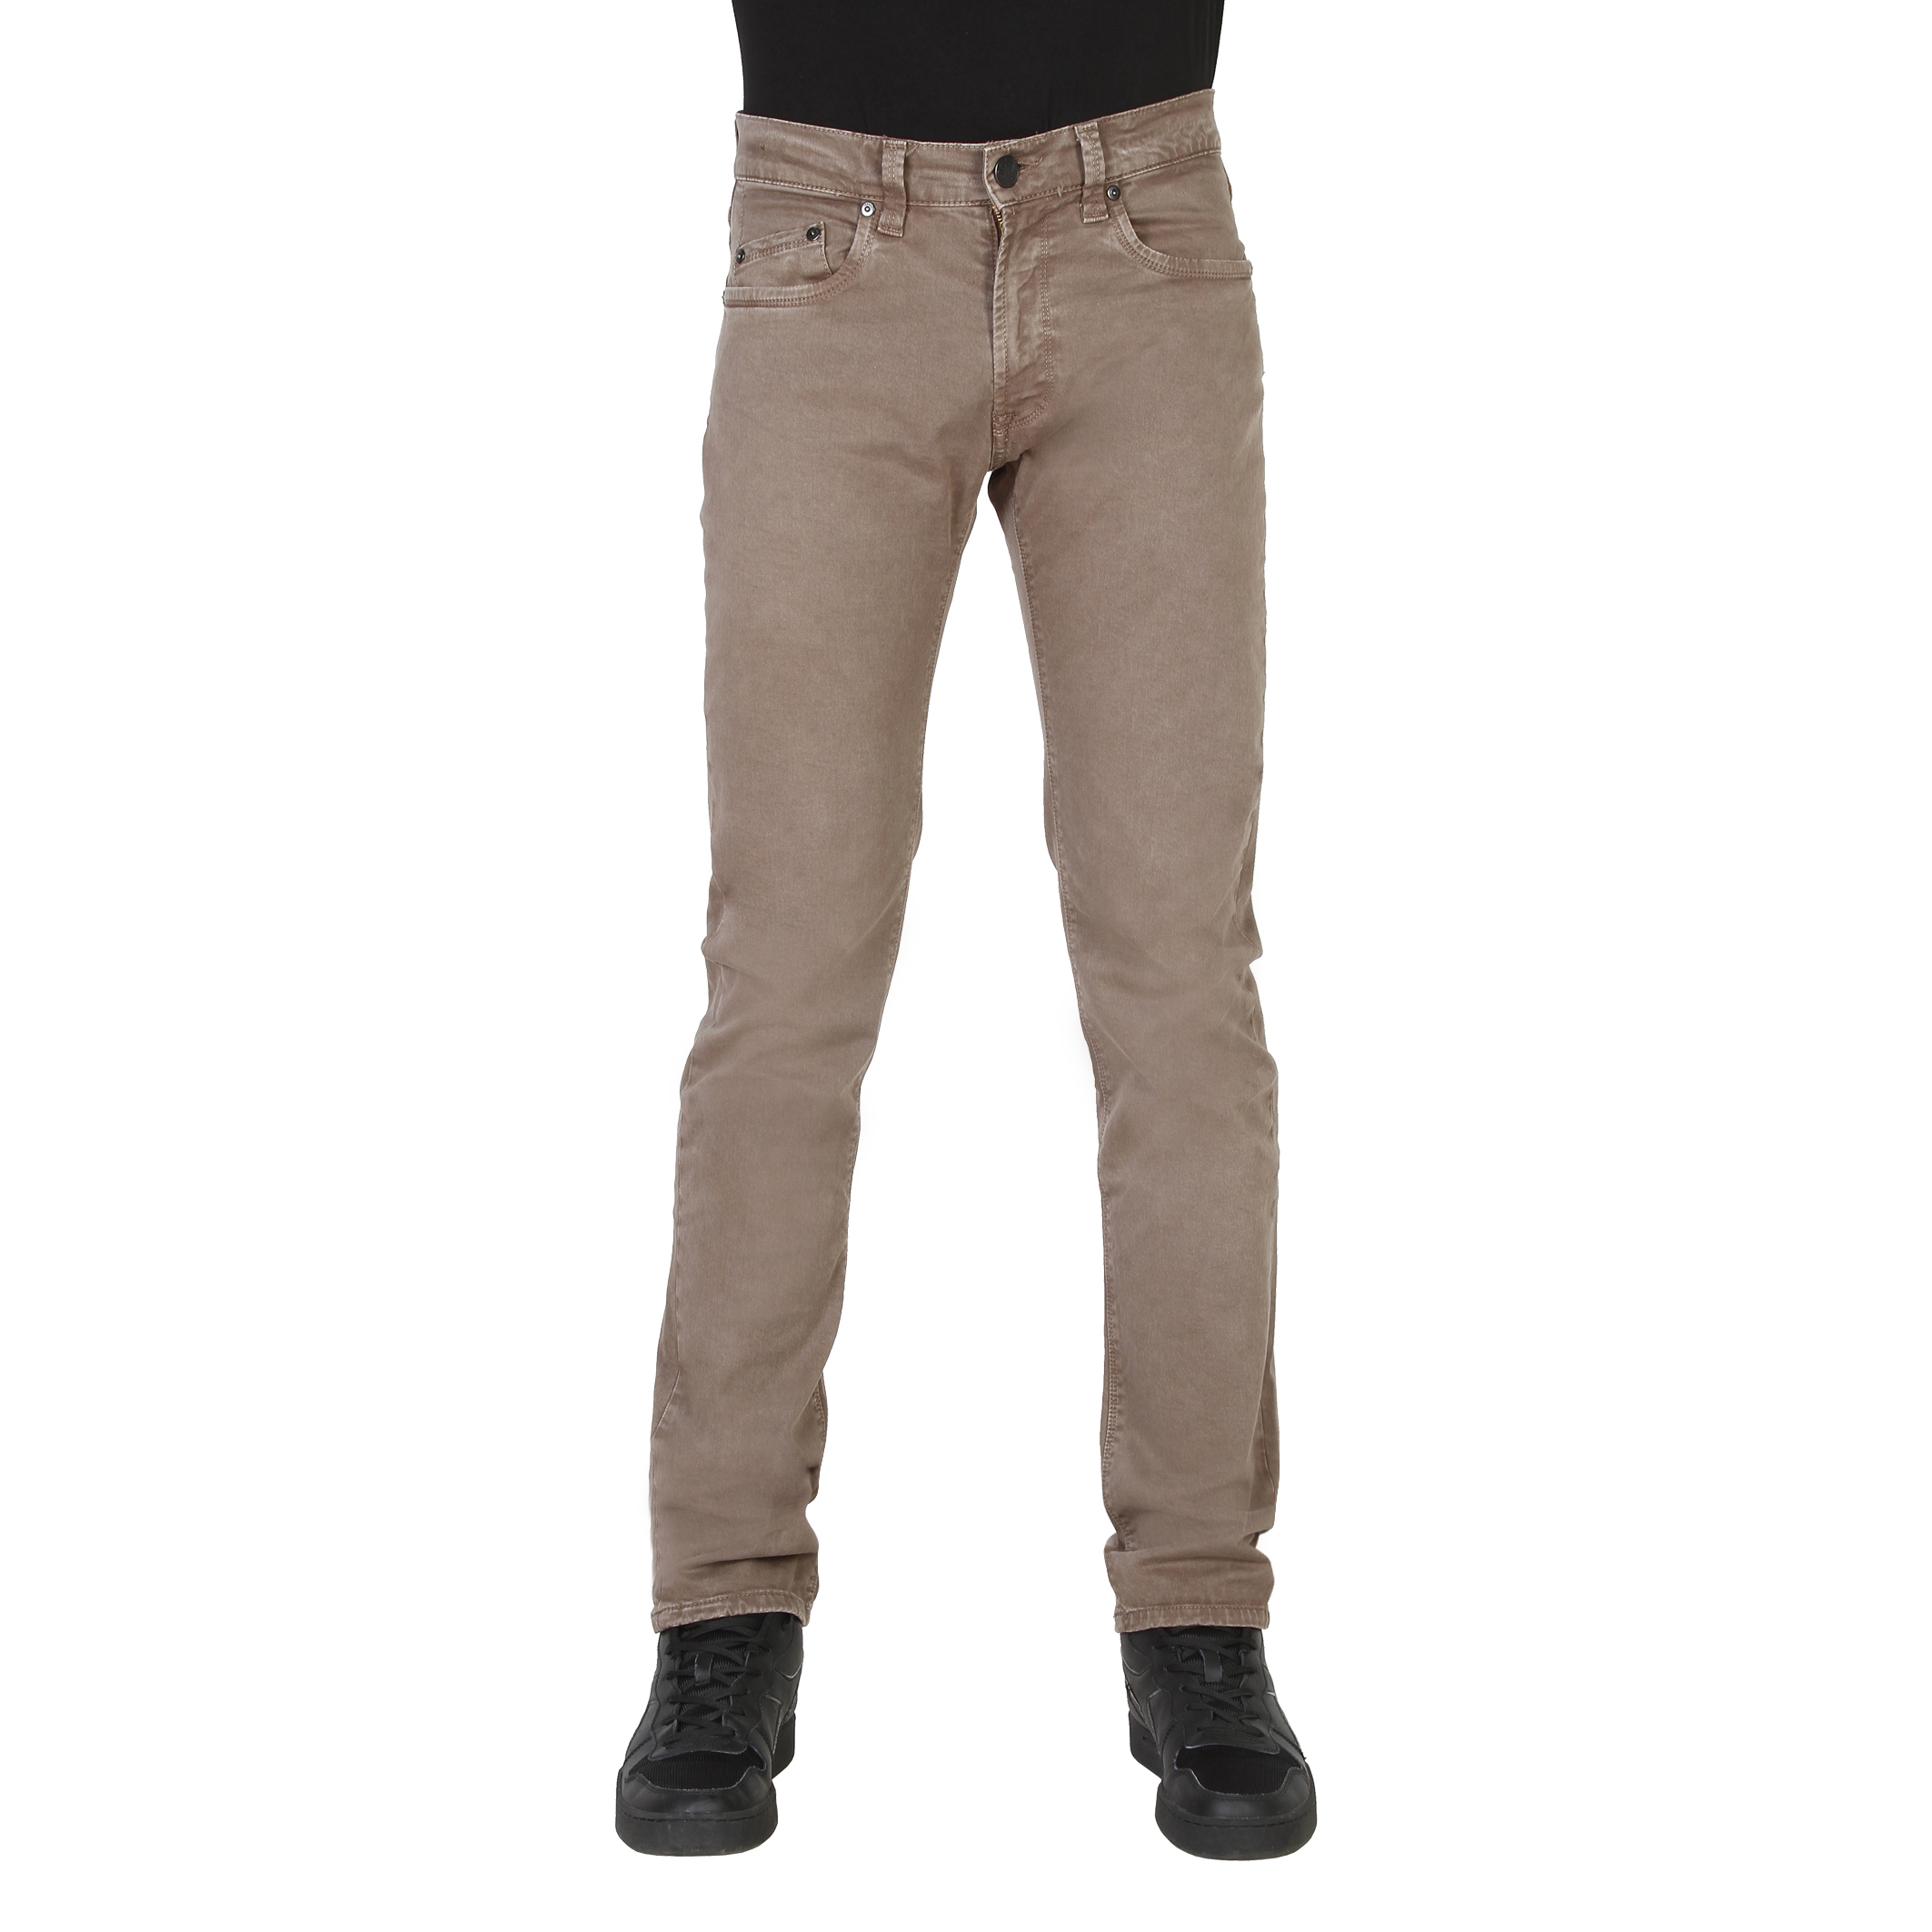 Jeans  Carrera Jeans 00T707_0845A brown